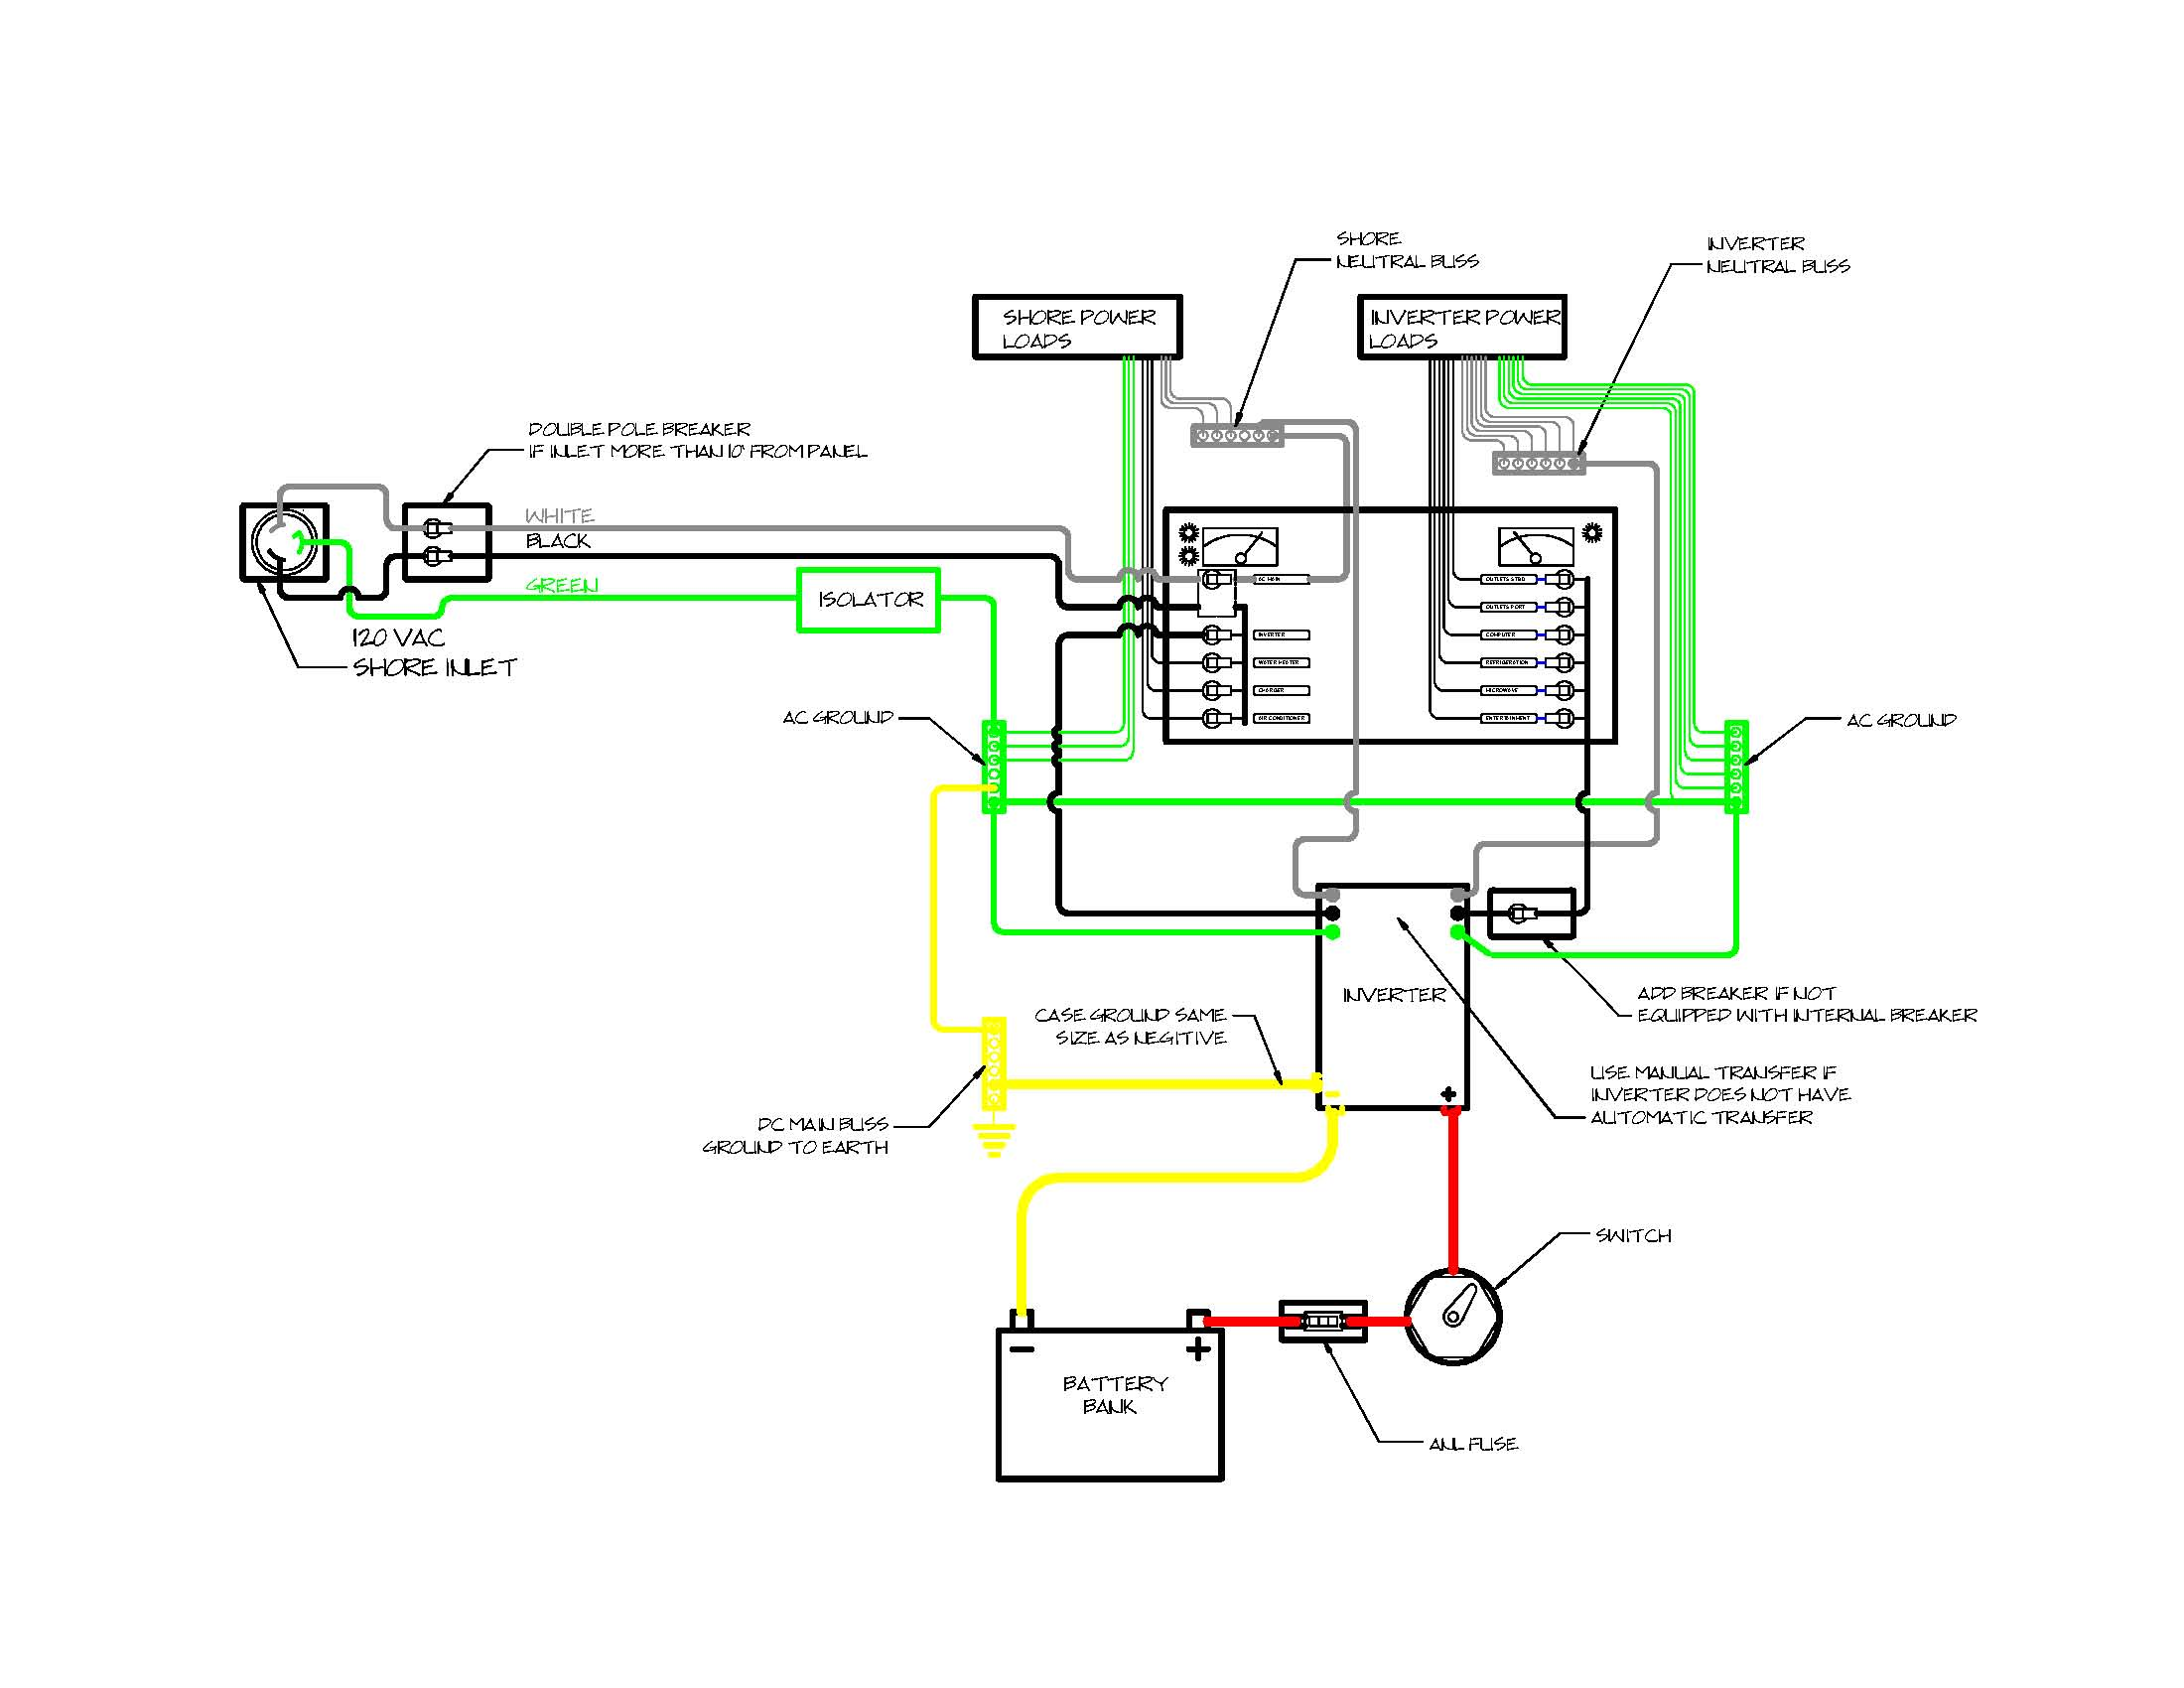 boat inverter wiring diagram marine battery switch wiring diagram marine battery wiring diagram understanding inverter installations project boat zen inverter 12 volt wiring diagram inverter wiring simplejpg